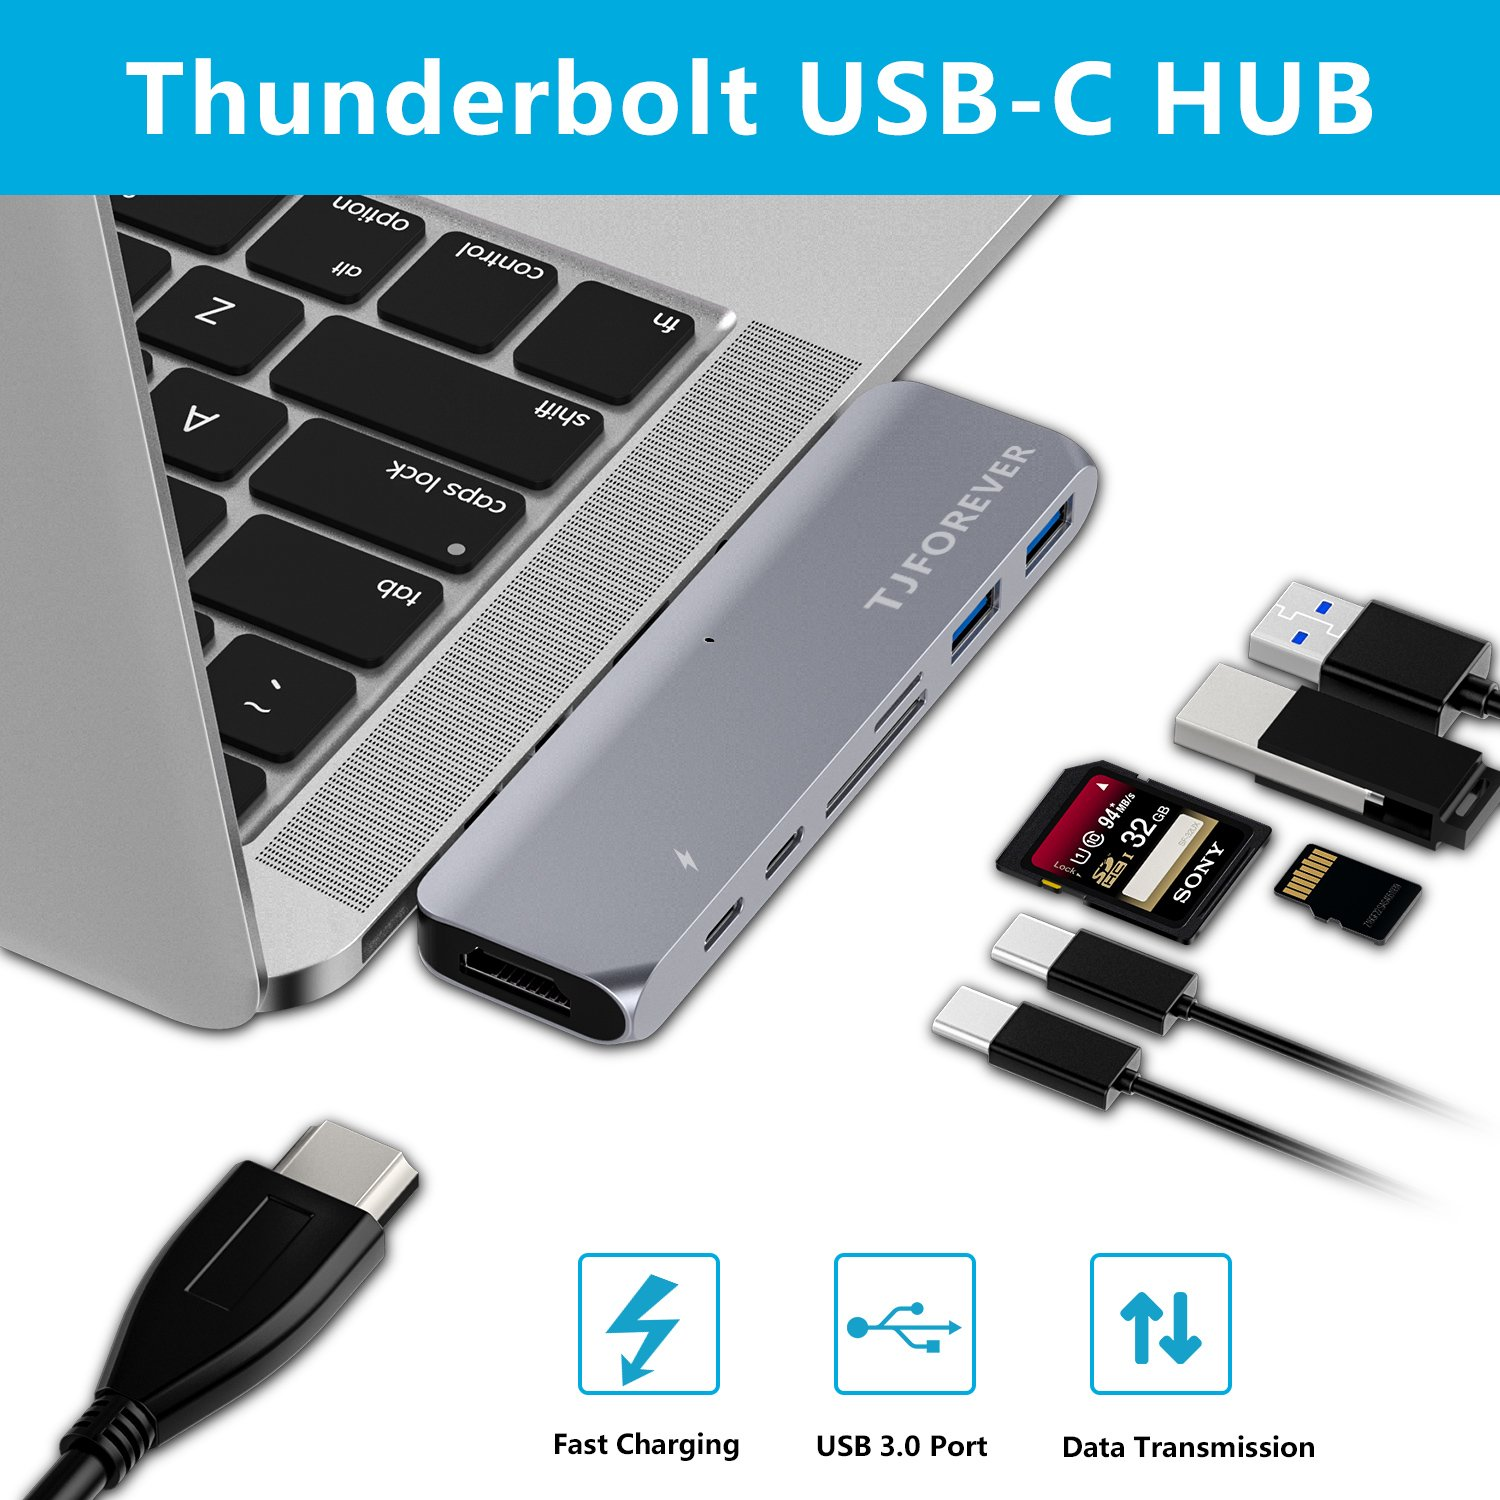 TJFOREVER USB C Hub Adapter 7 in 1 Dual USB Type-C Hdmi Docking Station Thunderbolt 3 Hub with 100W Power Delivery,USB-C,4K HDMI,2xUSB3.0,SD and MicroSD Card Reader for 2016/2017 MacBook Pro